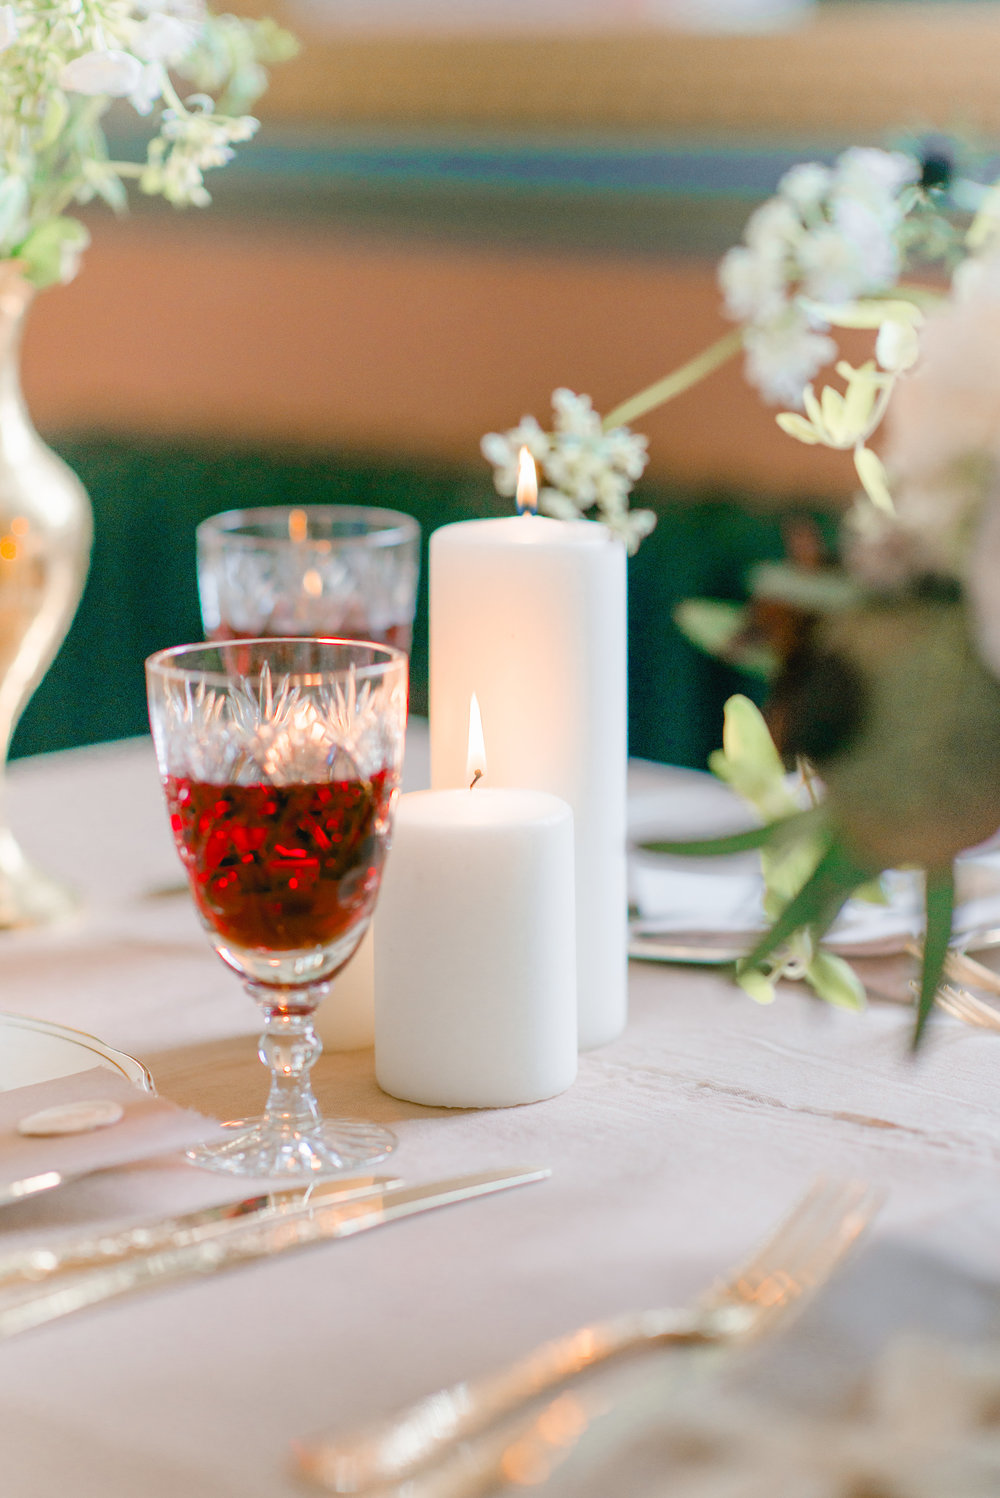 The Timeless Stylist-Elegant and Romantic Dinner Party Styling-Autumn Red Wine and Candles